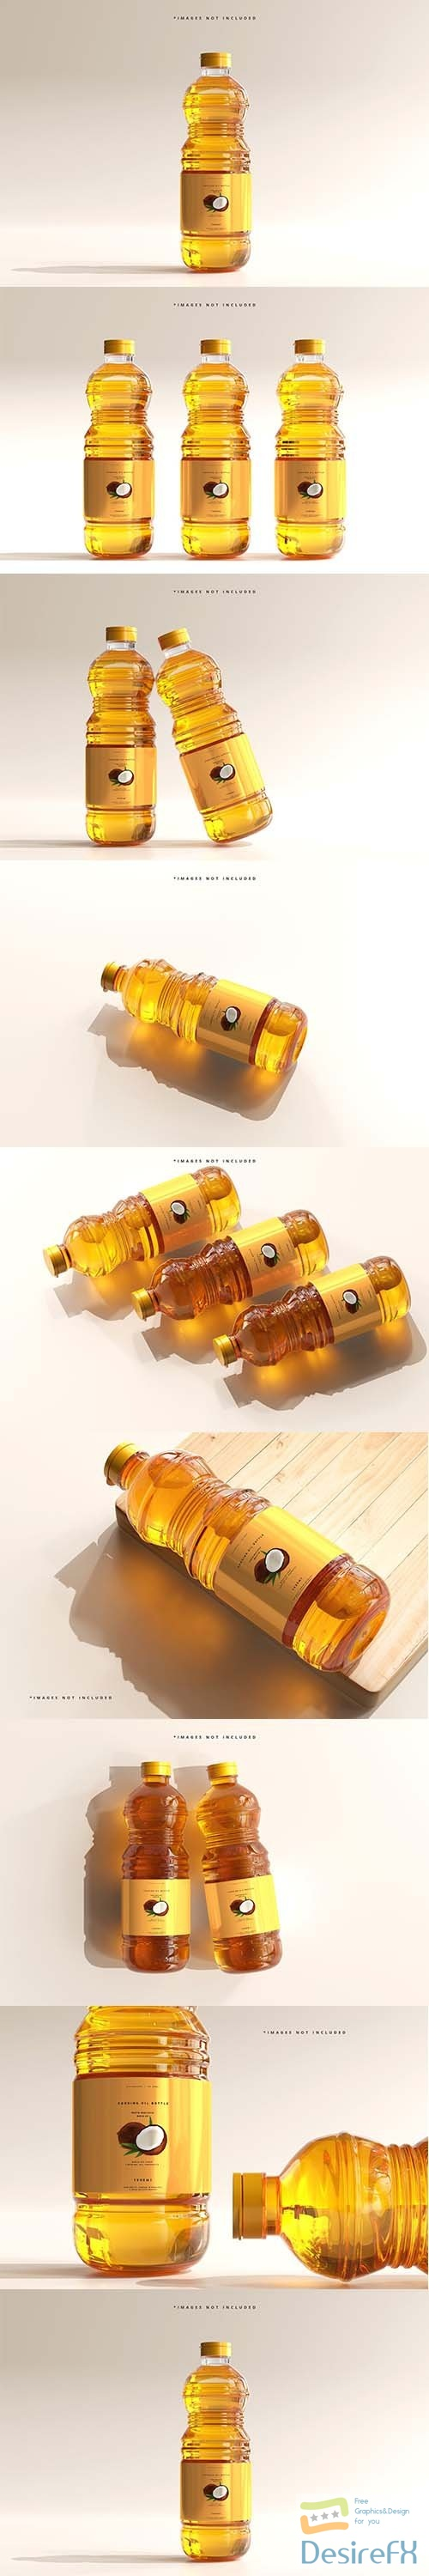 CreativeMarket - Cooking Oil Bottle Mockup 6005164